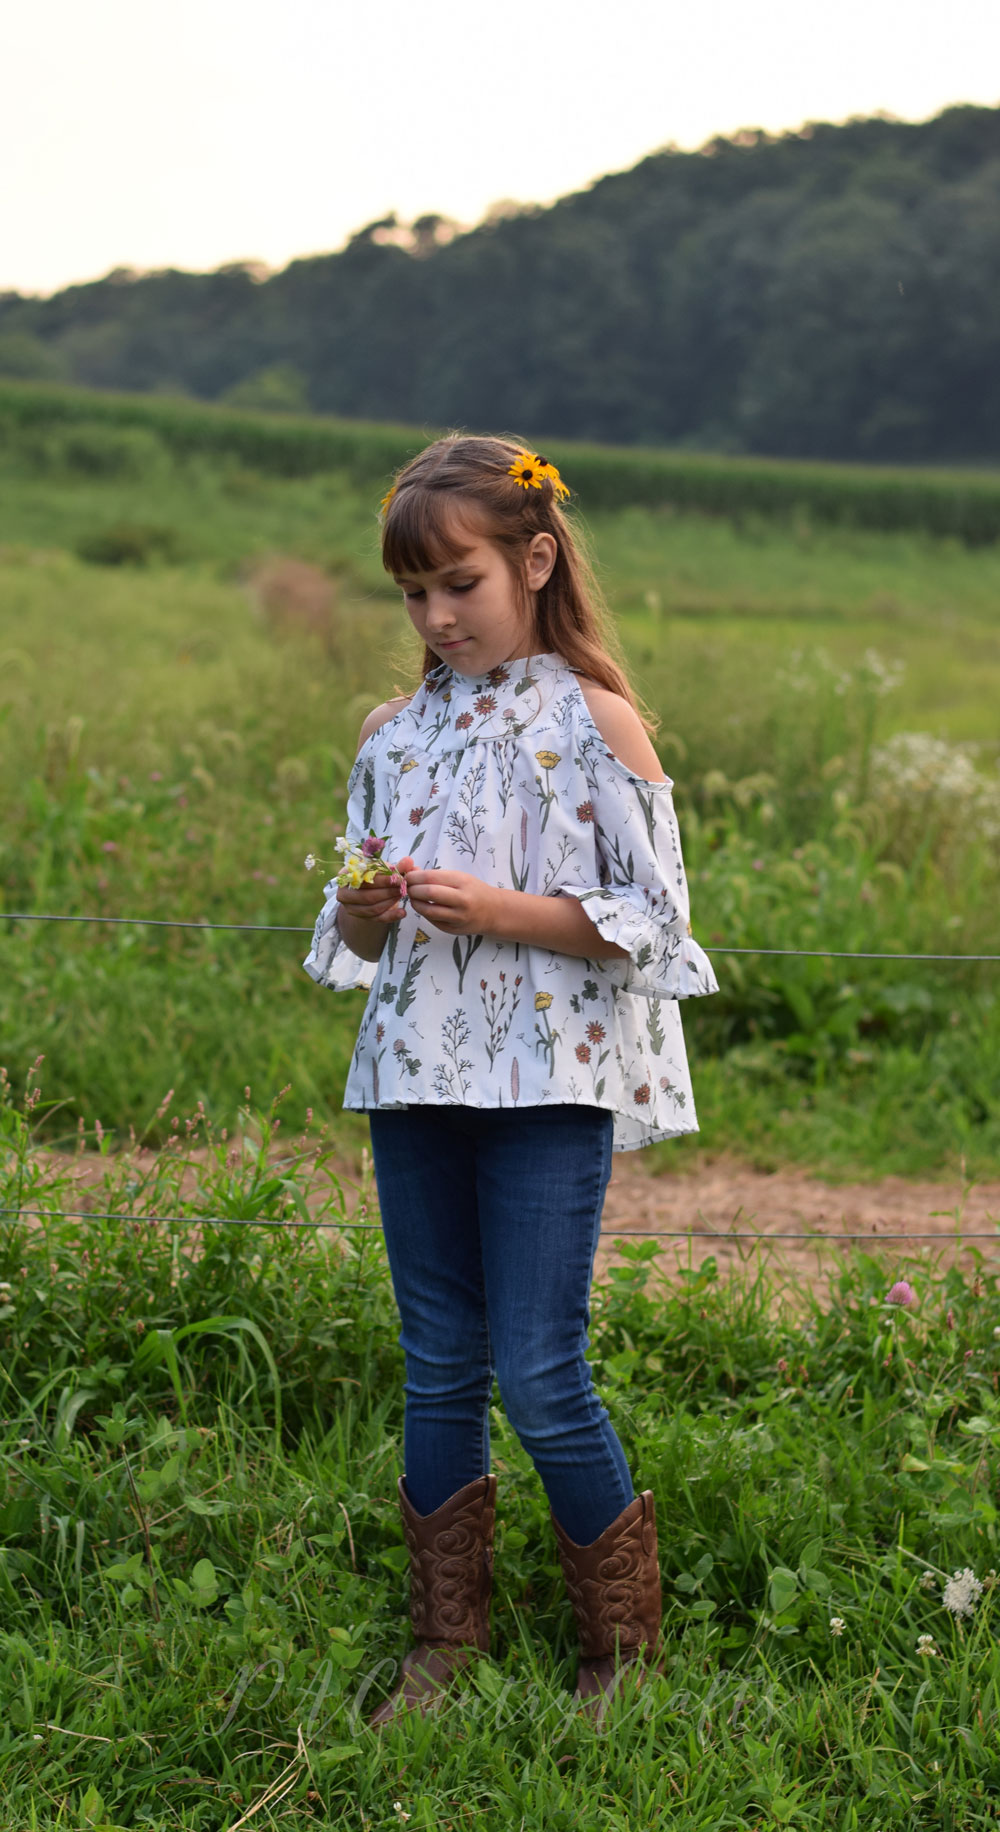 Wildflower Surprise fabric in a boho style girls' shirt!